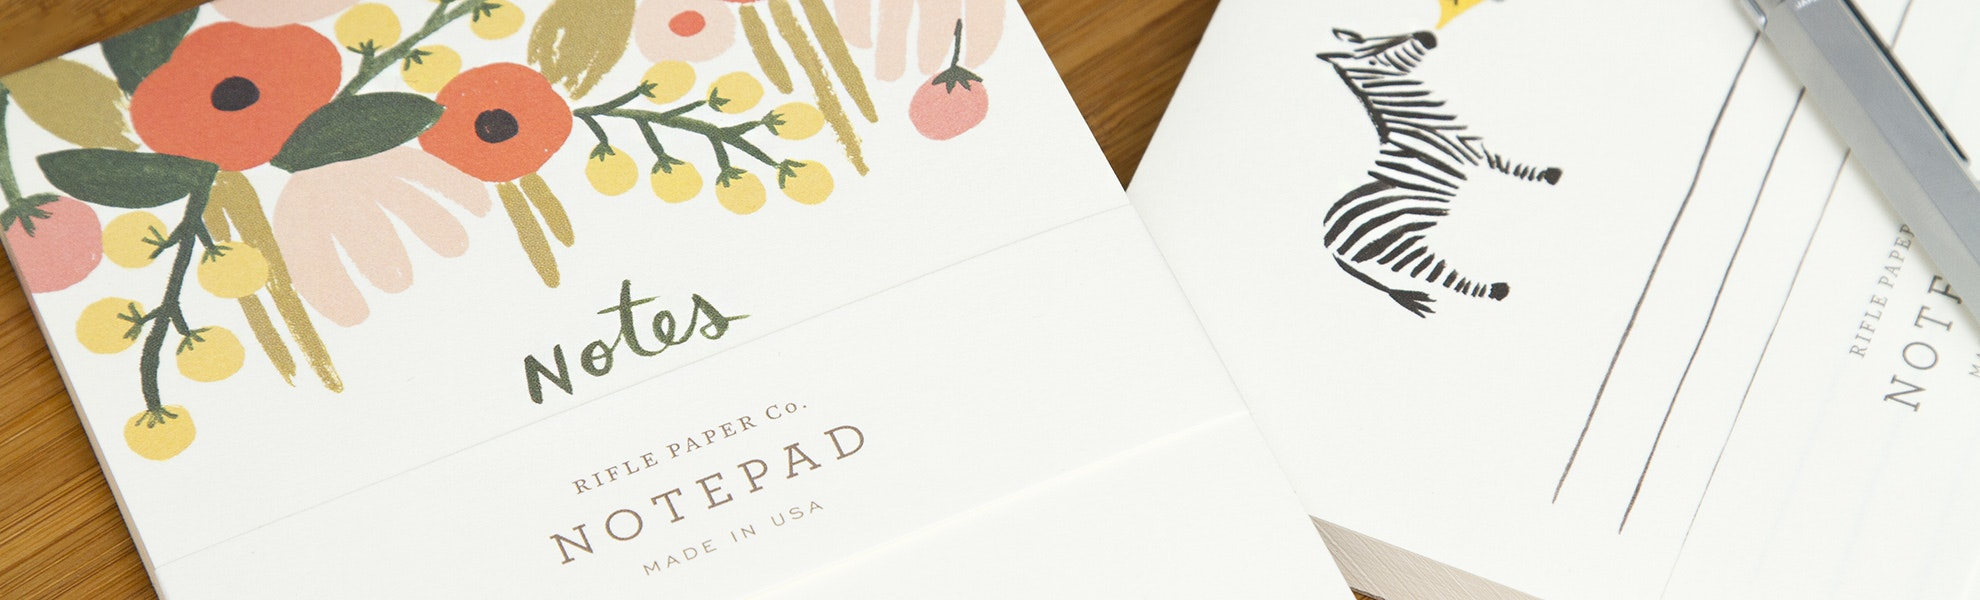 Rifle Paper Co. Notepad 2 Pack